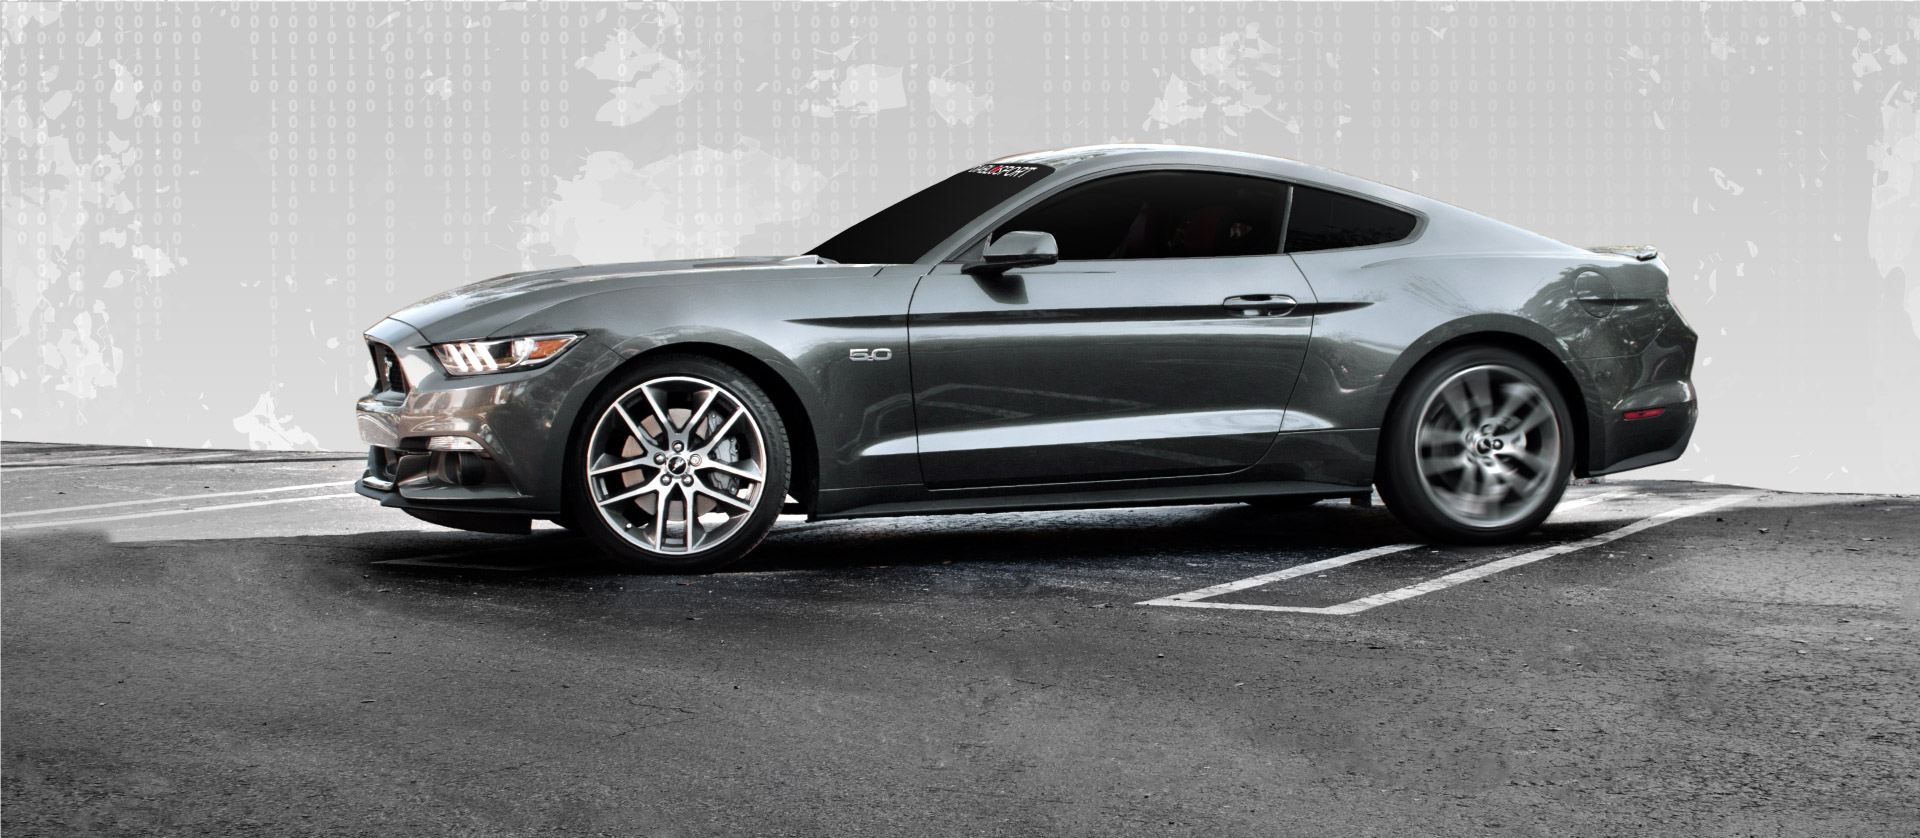 2018 Mustang Gt Cold Air Intake >> 2015-2016 Ford Mustang GT 5.0L Tuners - DiabloSport